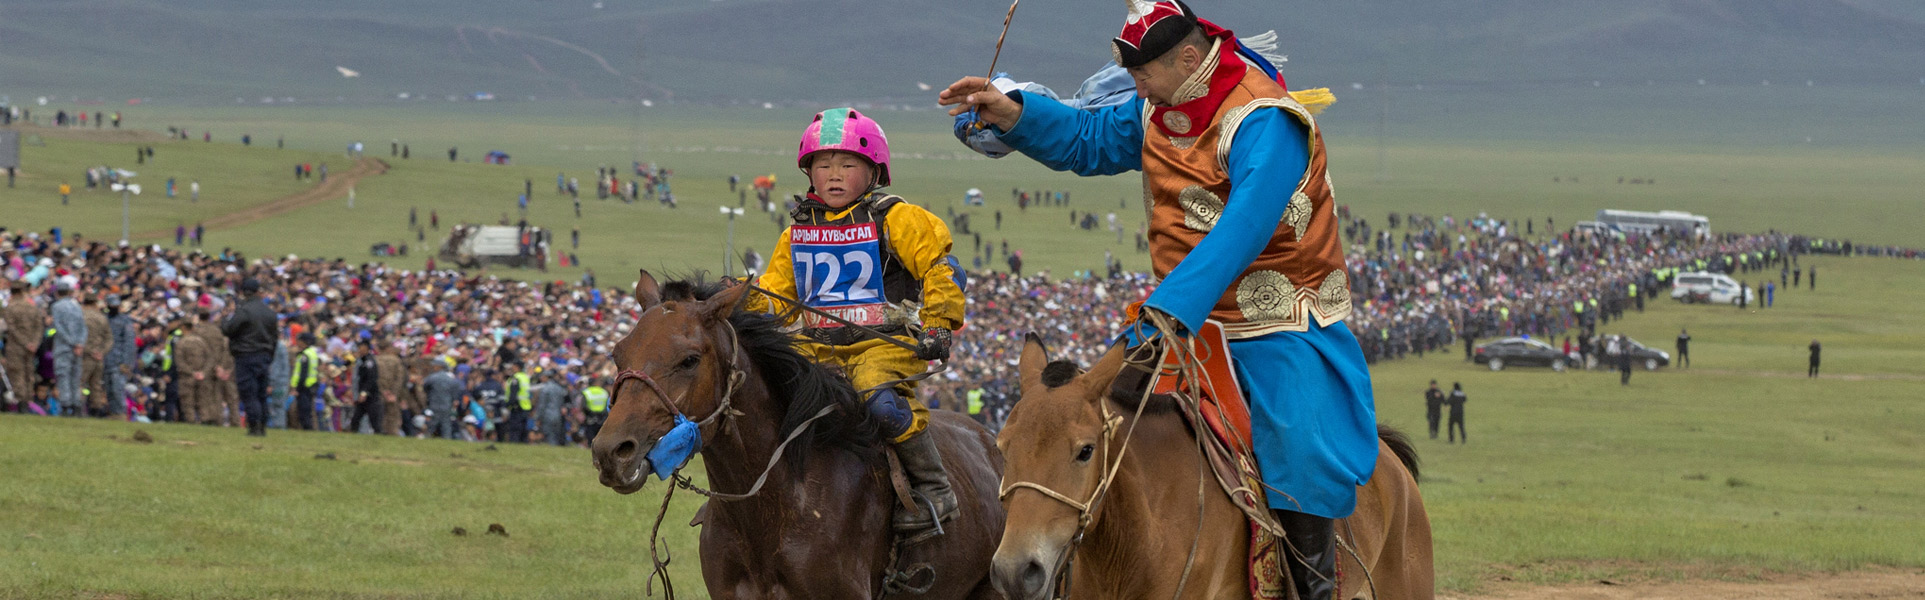 Mongolia_tours_and_trips_list